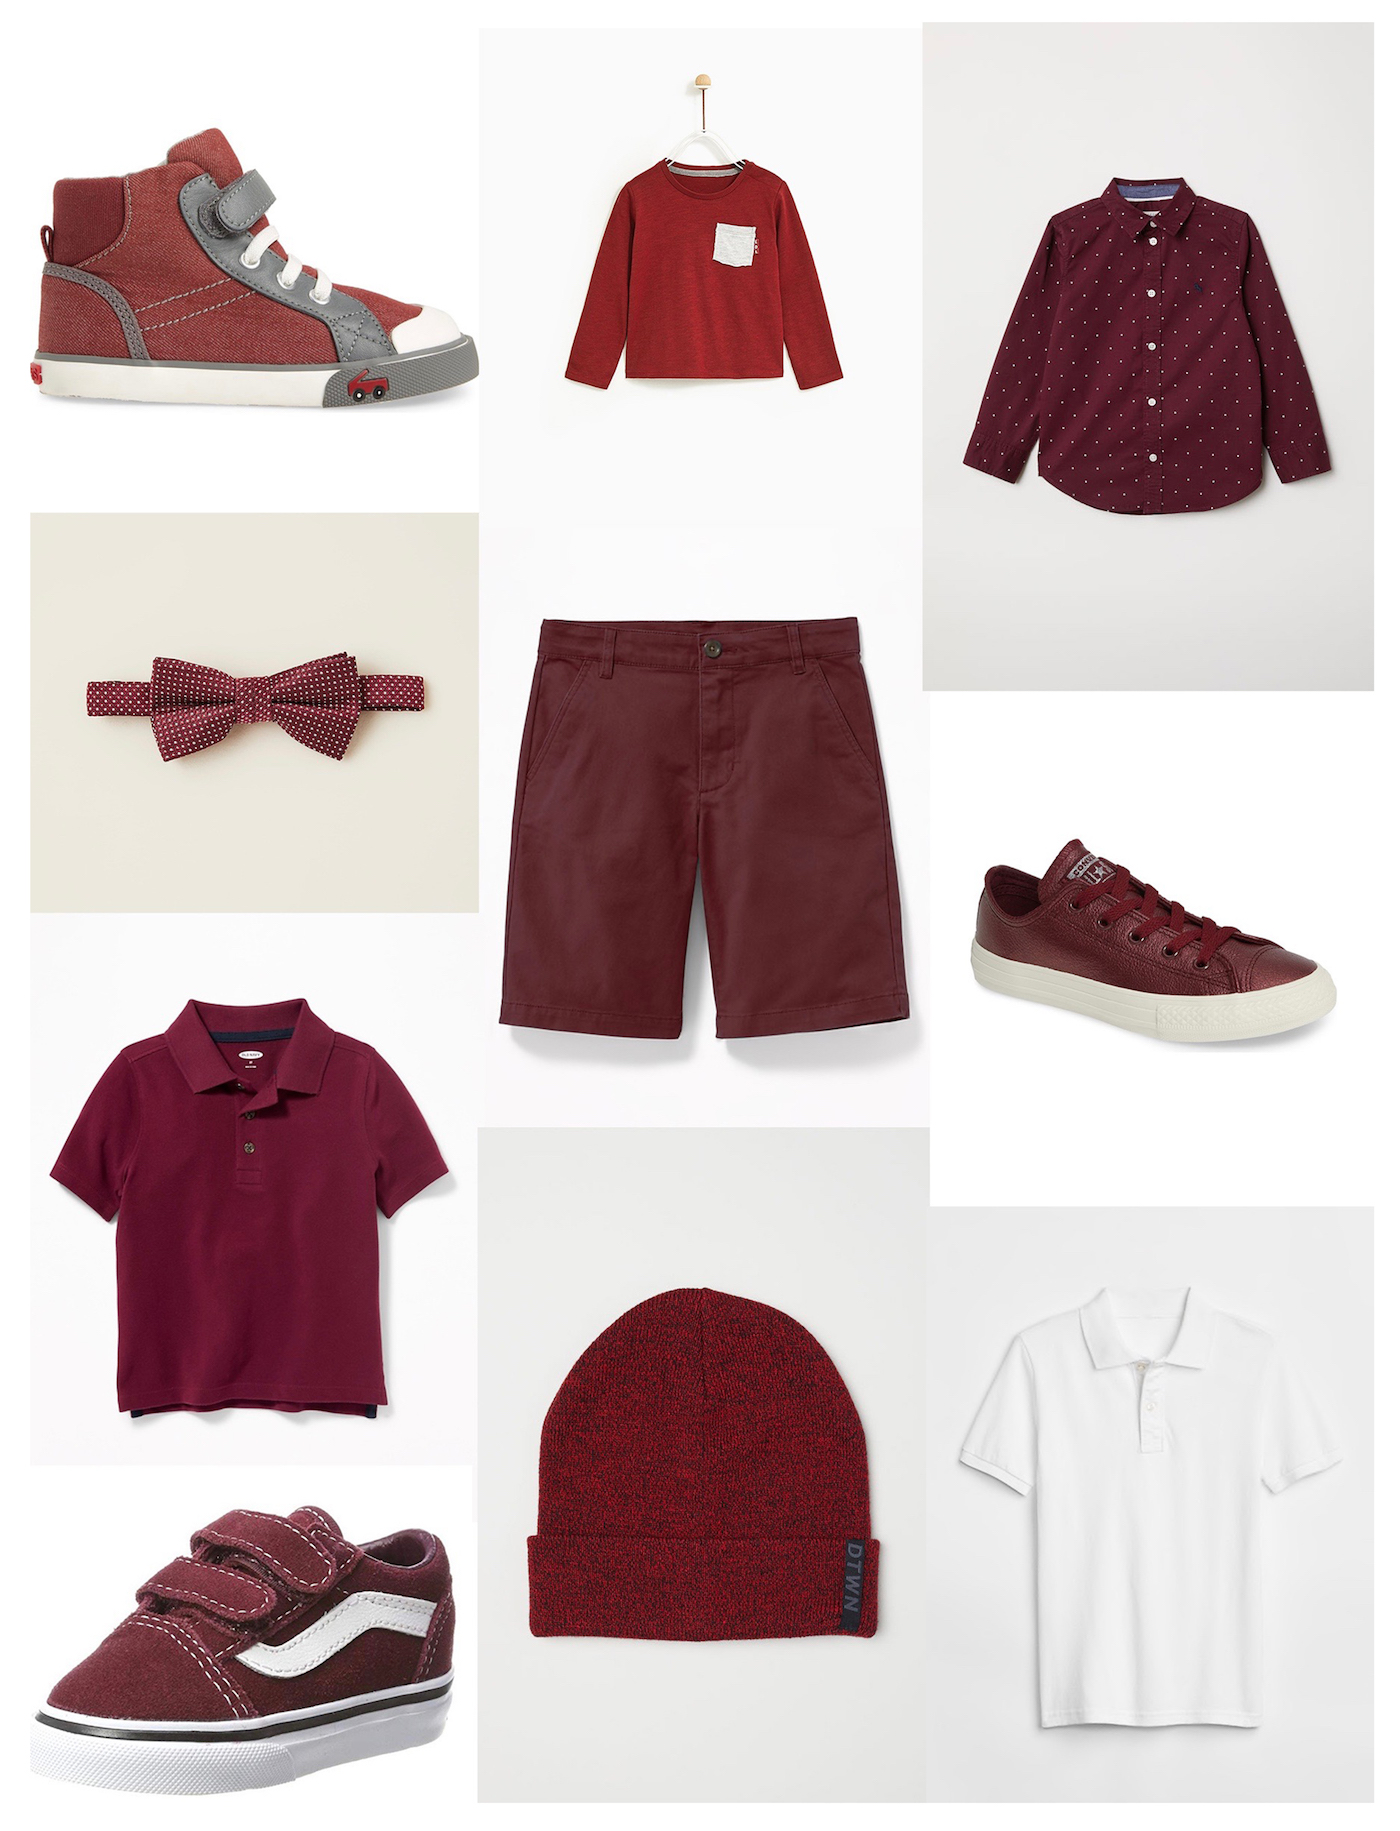 Maroon clothes for toddlers // Mississippi State University // www.thehiveblog.com